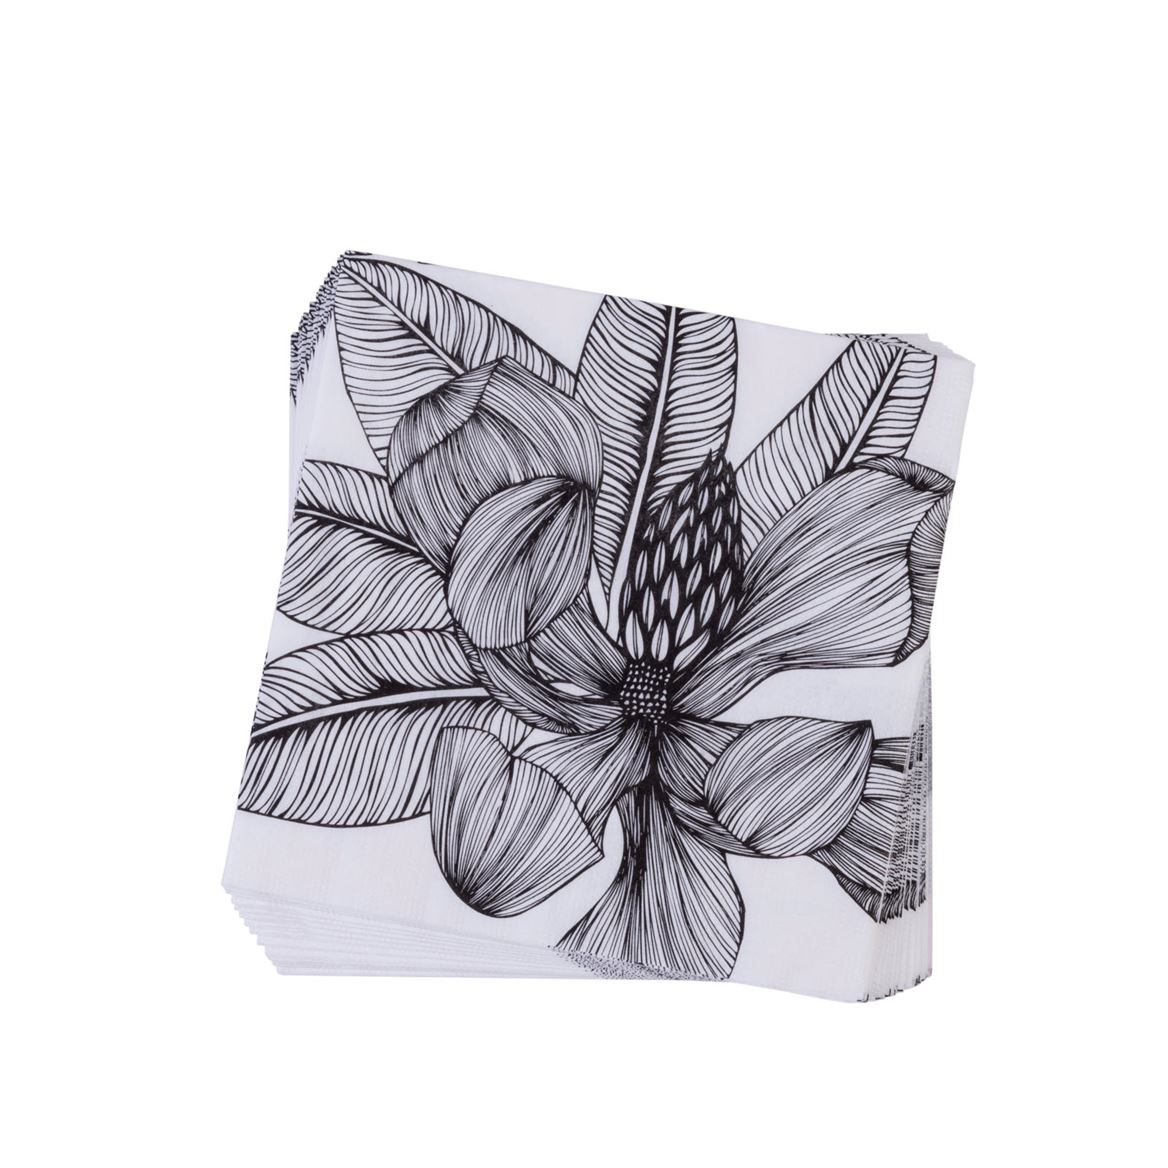 TROPICAL FLOWER Paquete de 20 servilletas negro, blanco An. 33 x L 33 cm_tropical-flower-paquete-de-20-servilletas-negro,-blanco-an--33-x-l-33-cm